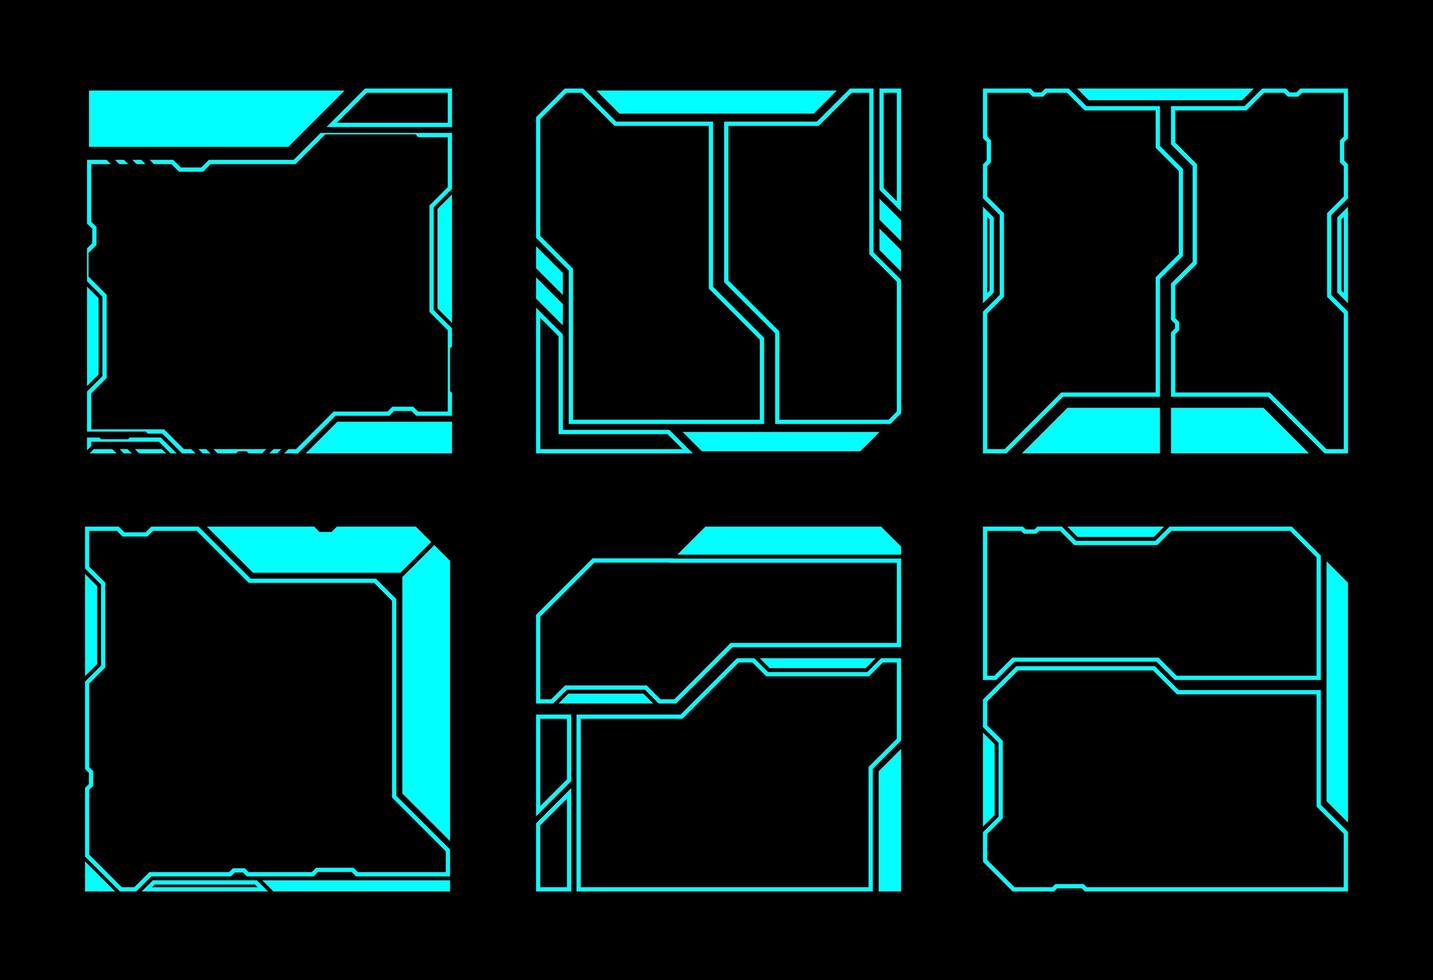 Geometric Square HUD Interface Elements vector